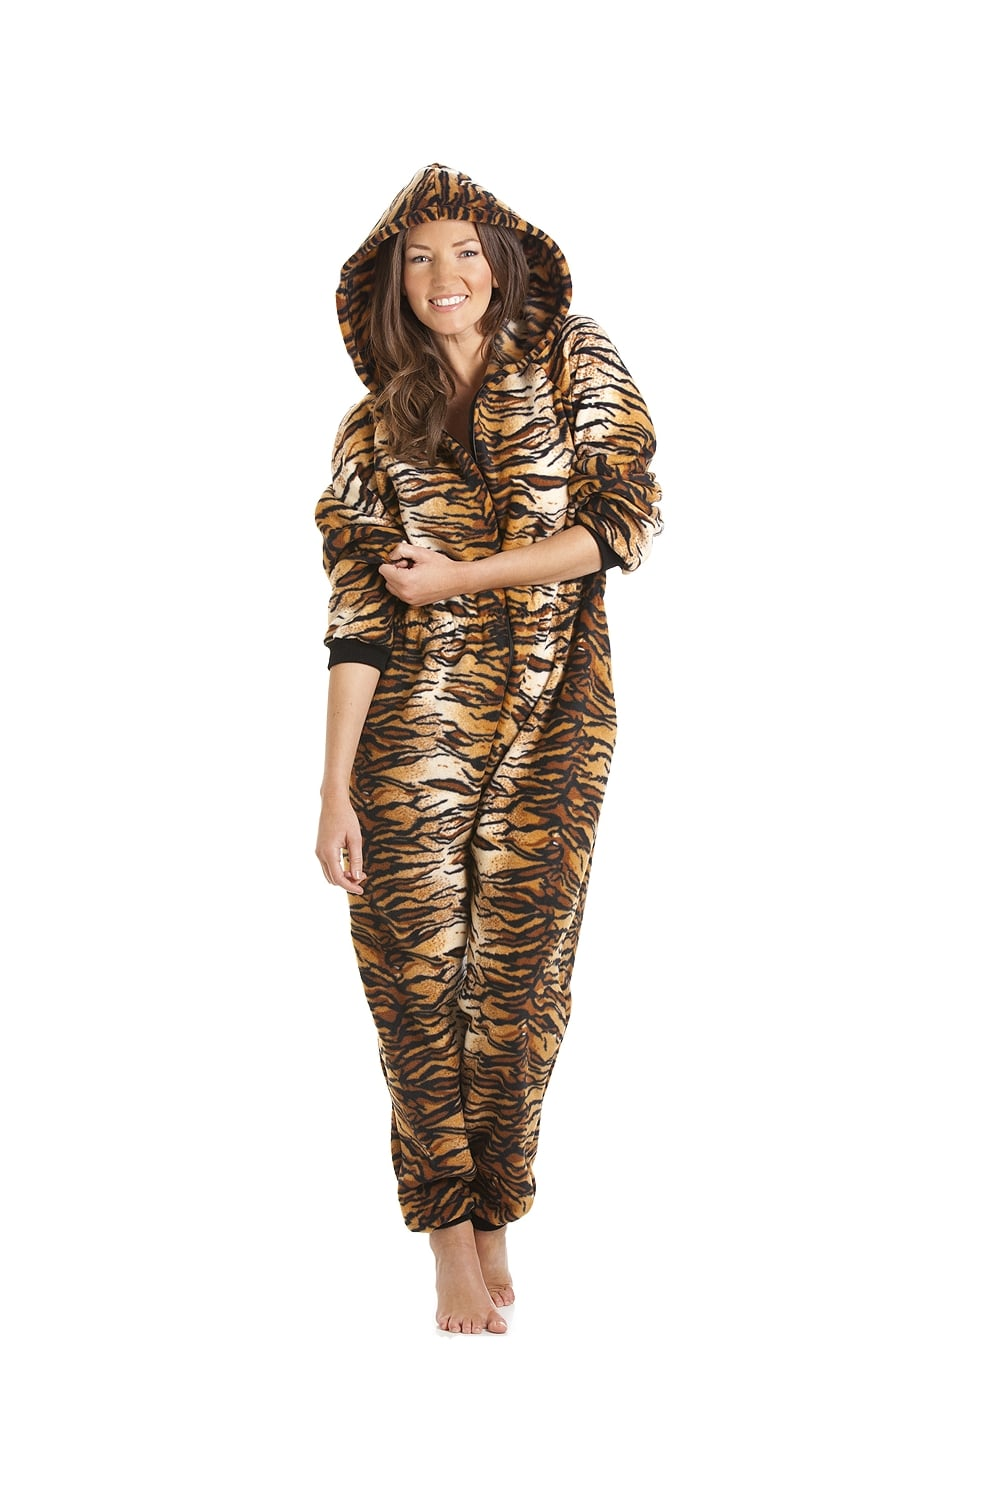 5ec9419818 Tiger Print Nightgowns Related Keywords & Suggestions - Tiger Print ...